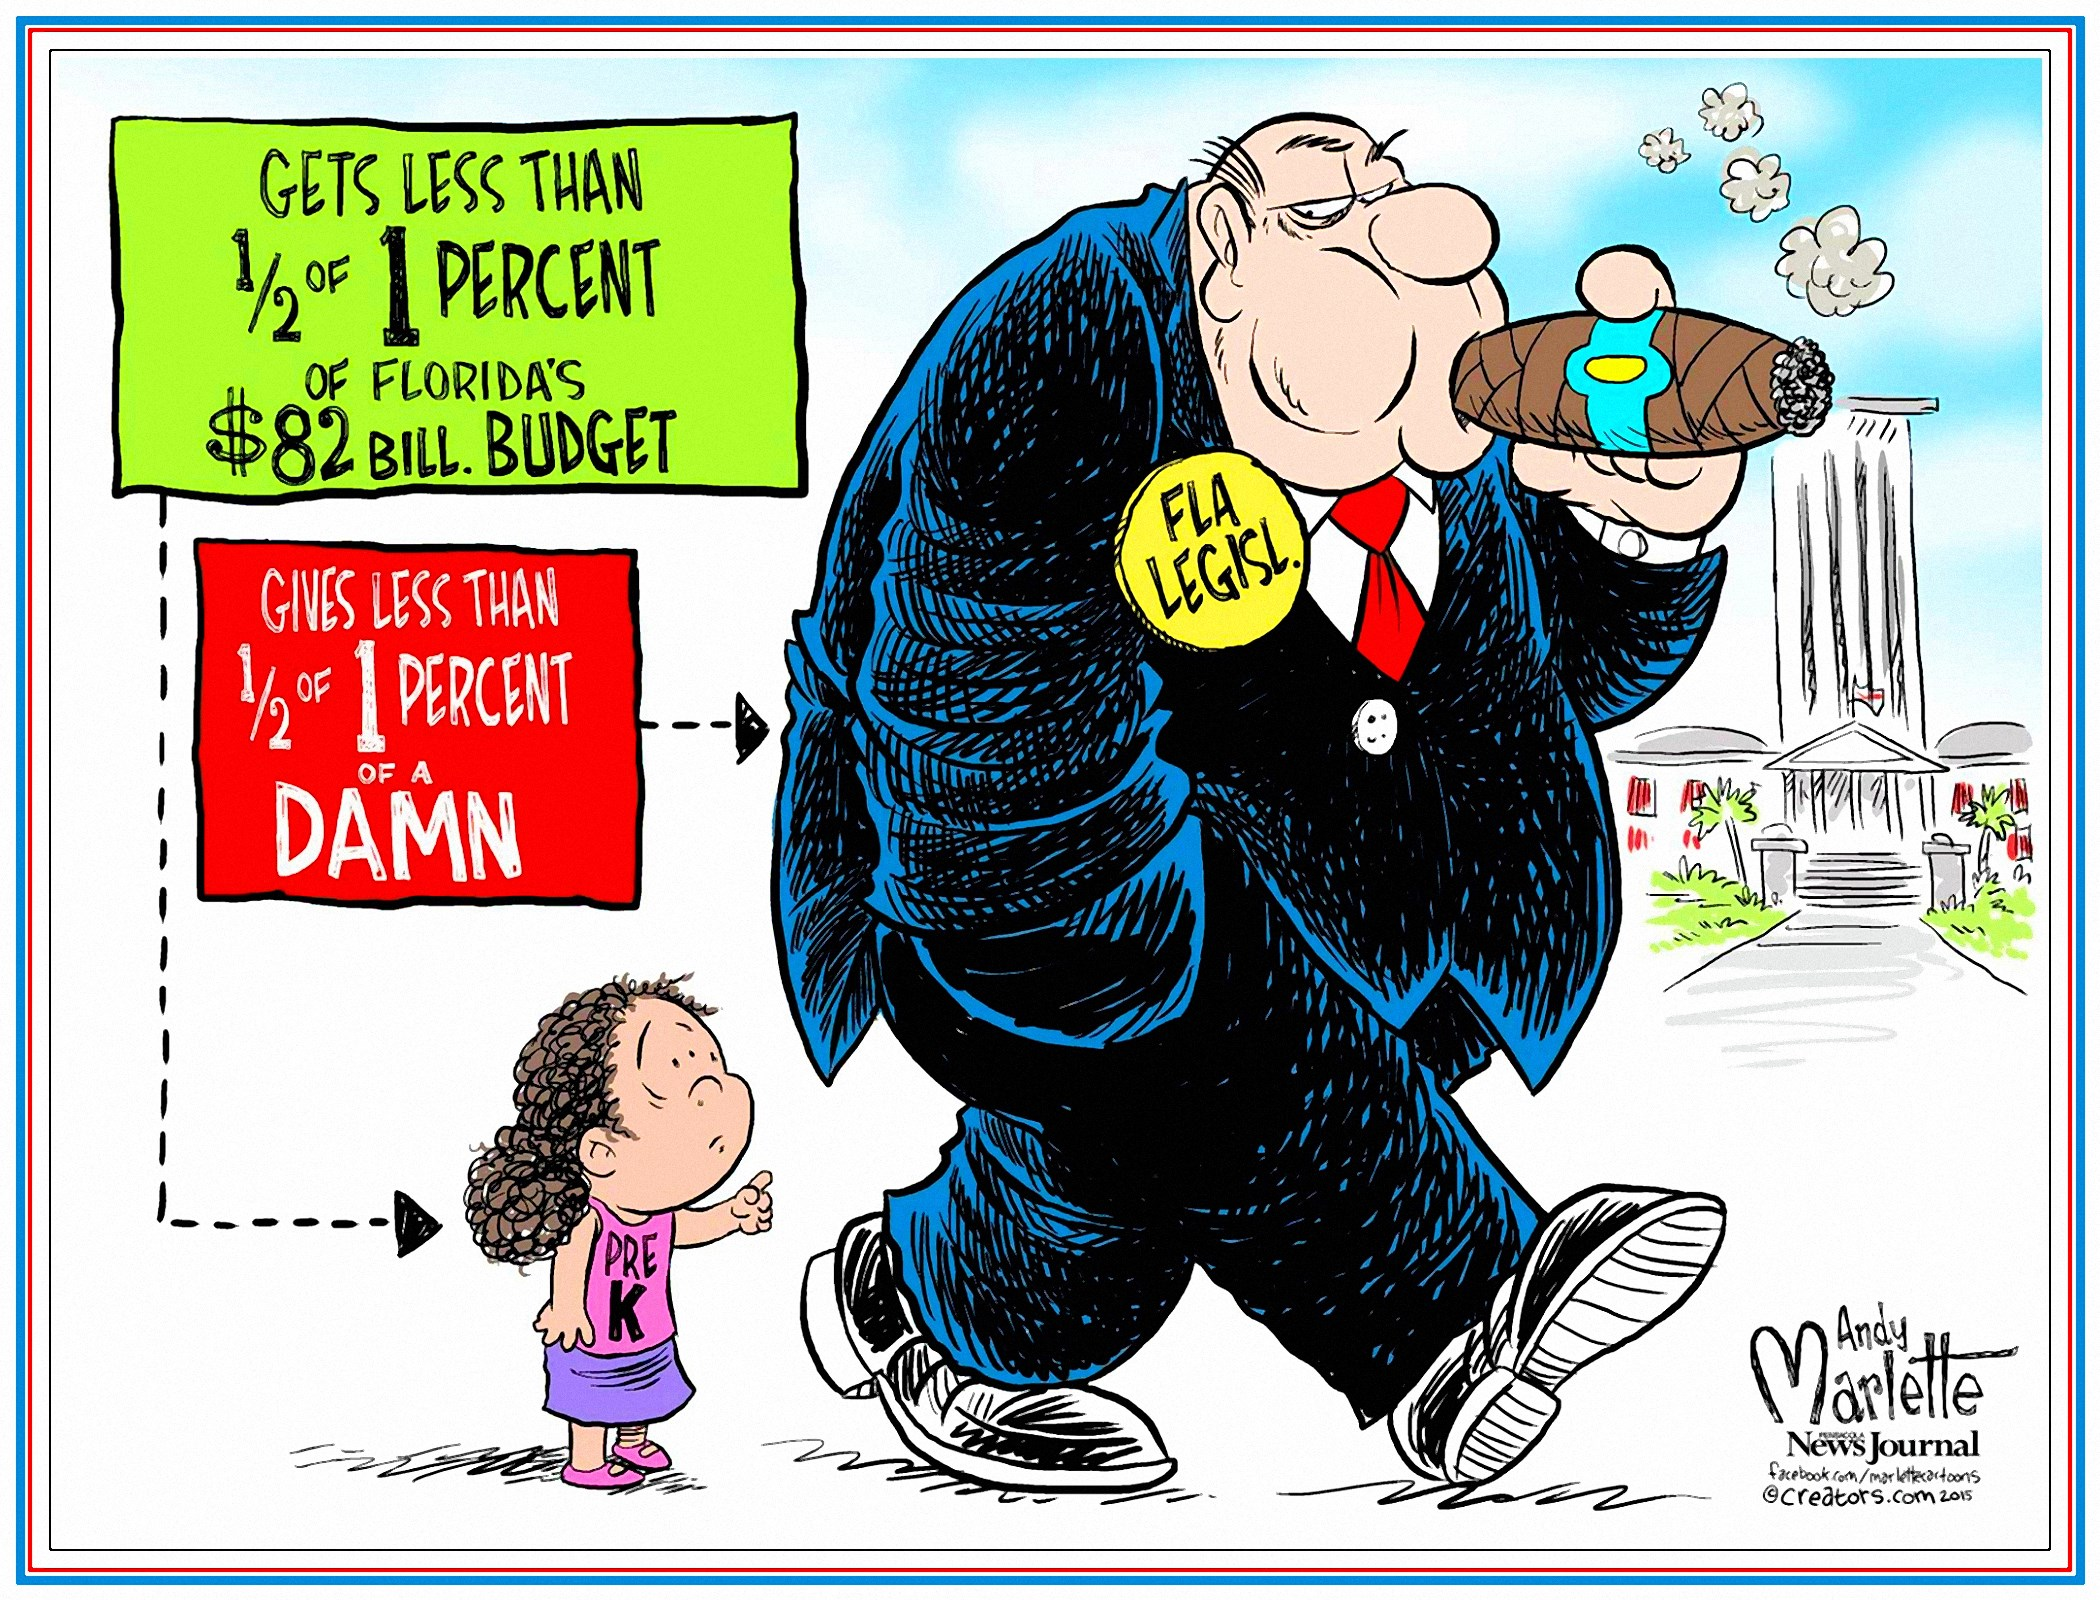 00 Andy Marlette. Florida Pre-K Funding. 2016